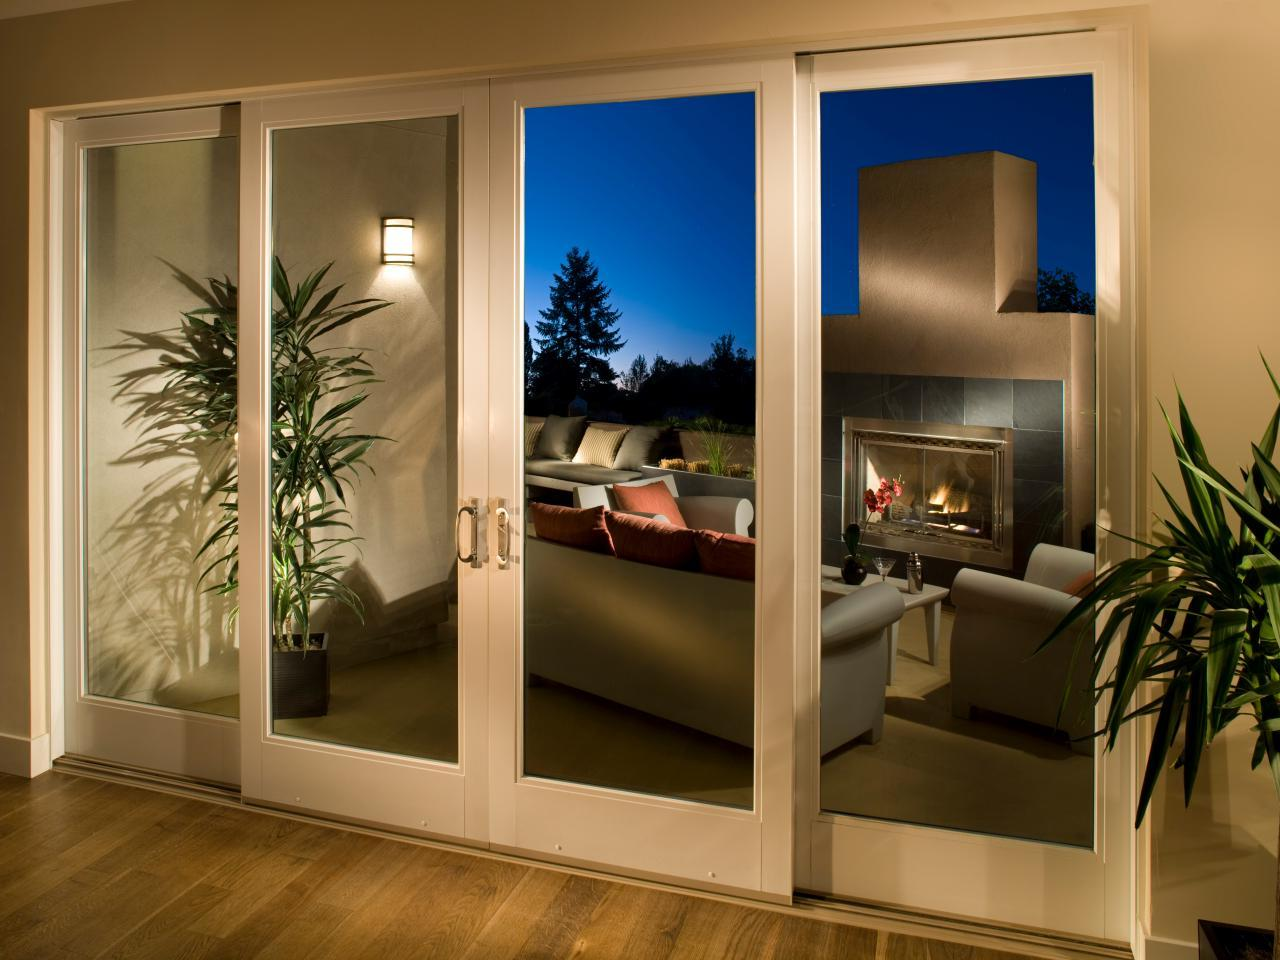 Loggia with sectional glass doors